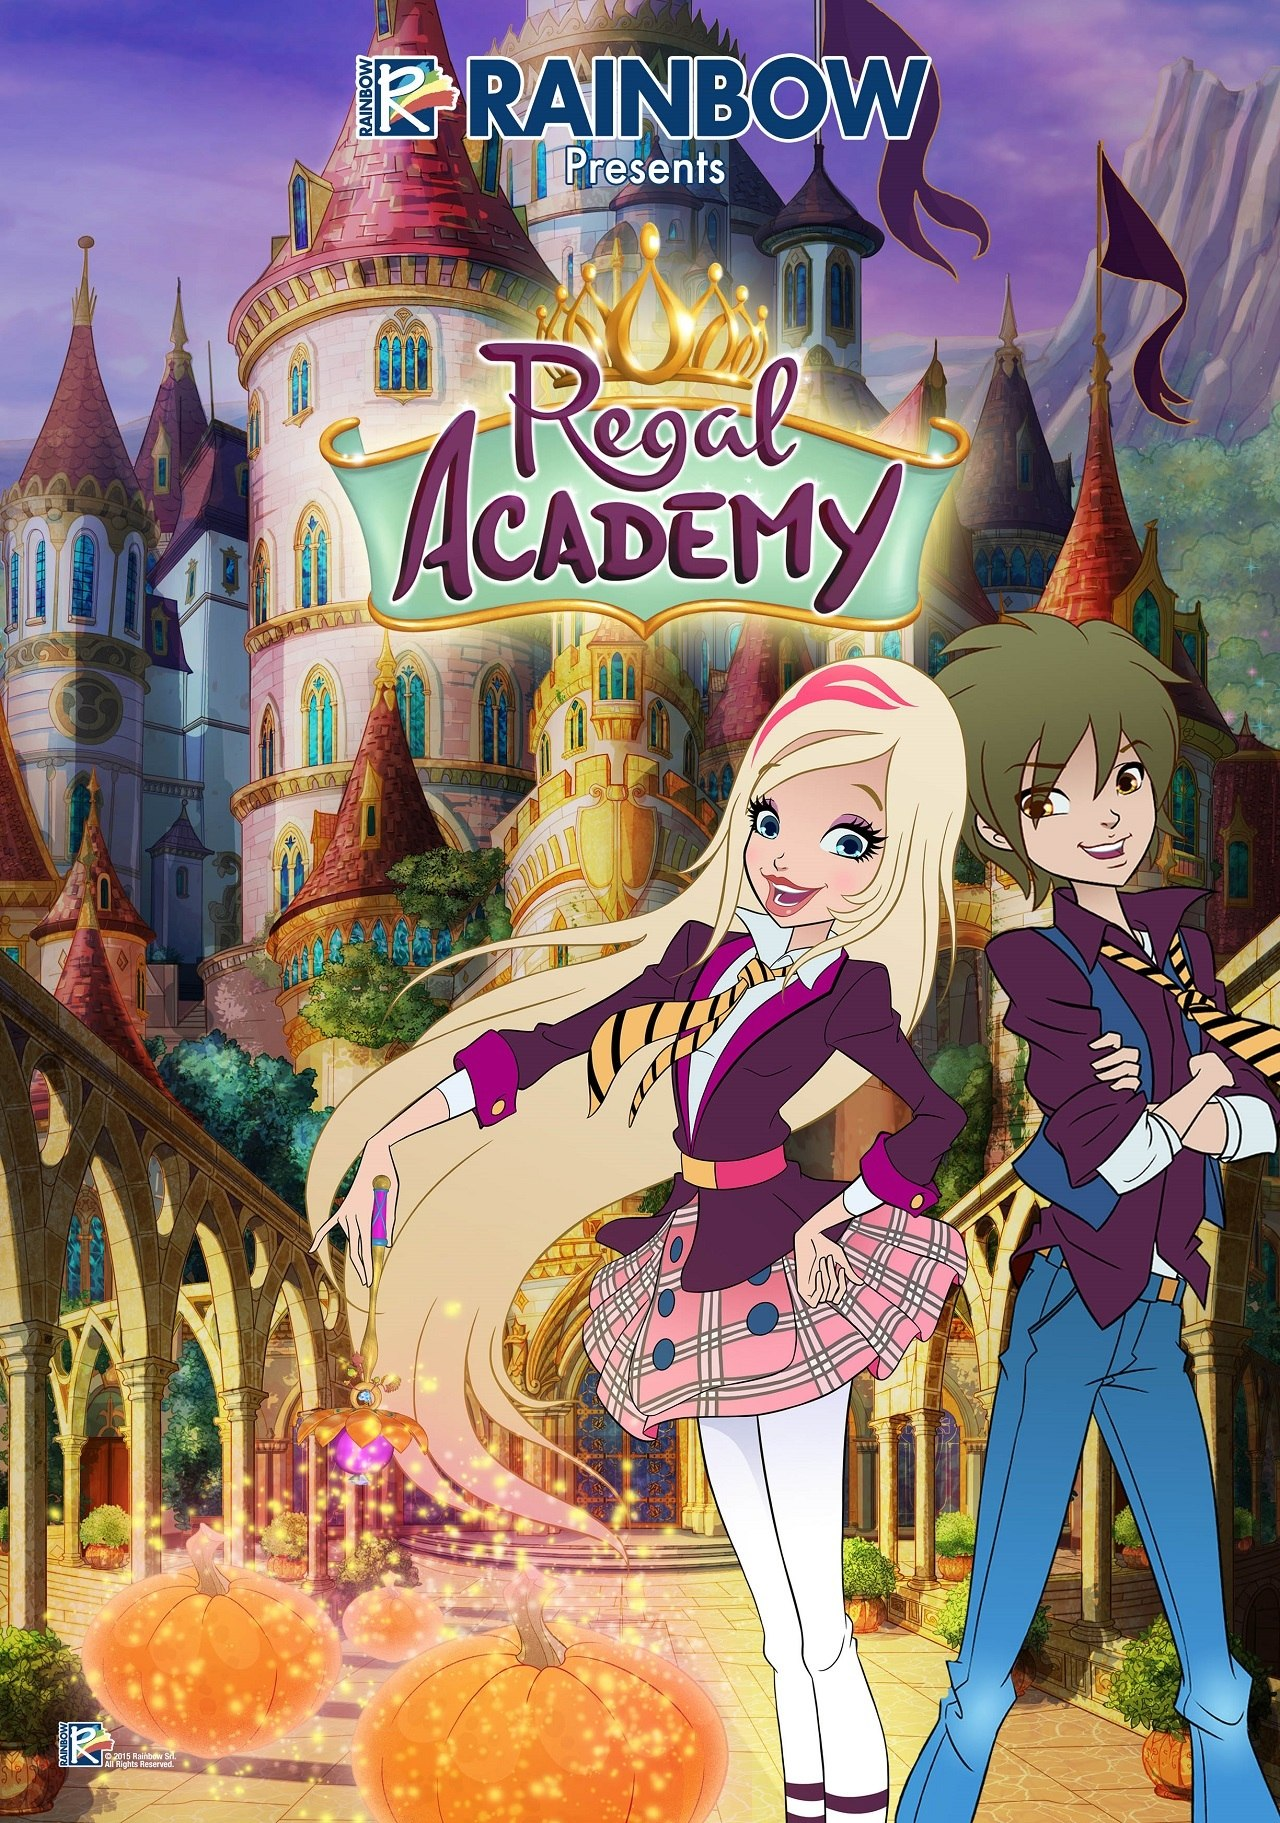 Regal Academy Is A Sparkling New Series Featuring An Irresistible Mixture Of Comedy Music And Innovative Animation Techniques